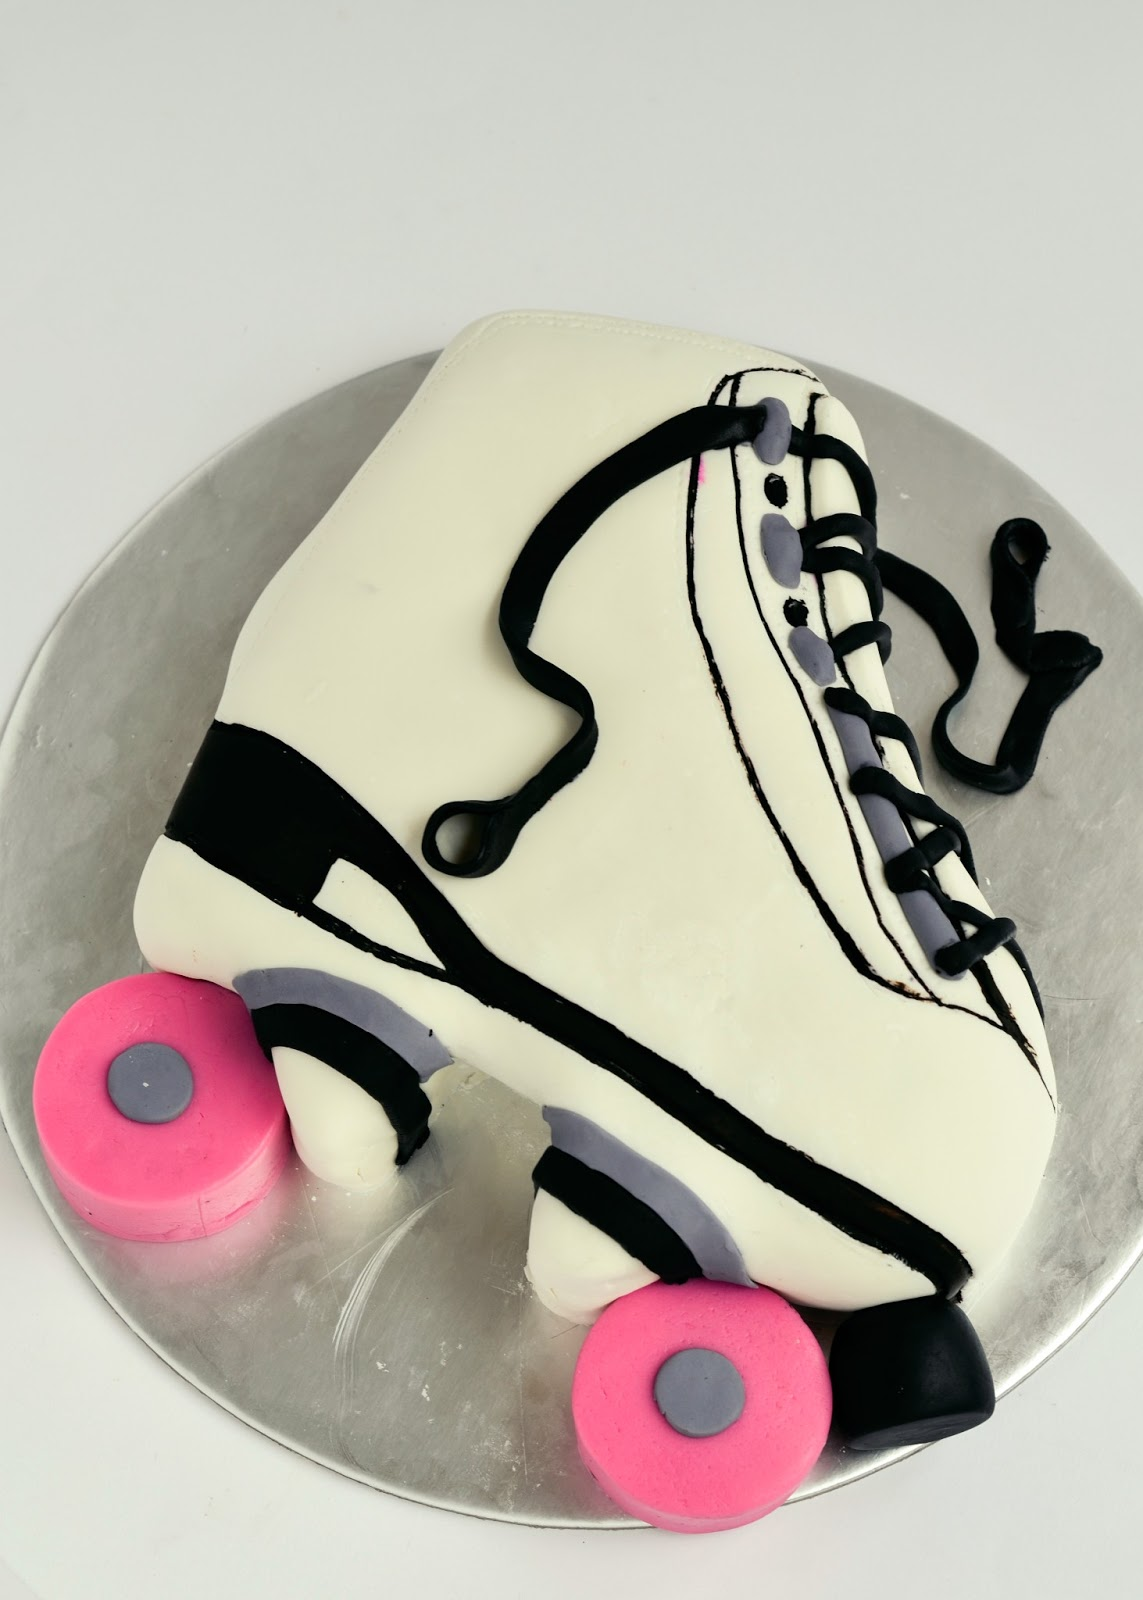 The Secret Lives Of Bakers Roller Skate Birthday Cake With A